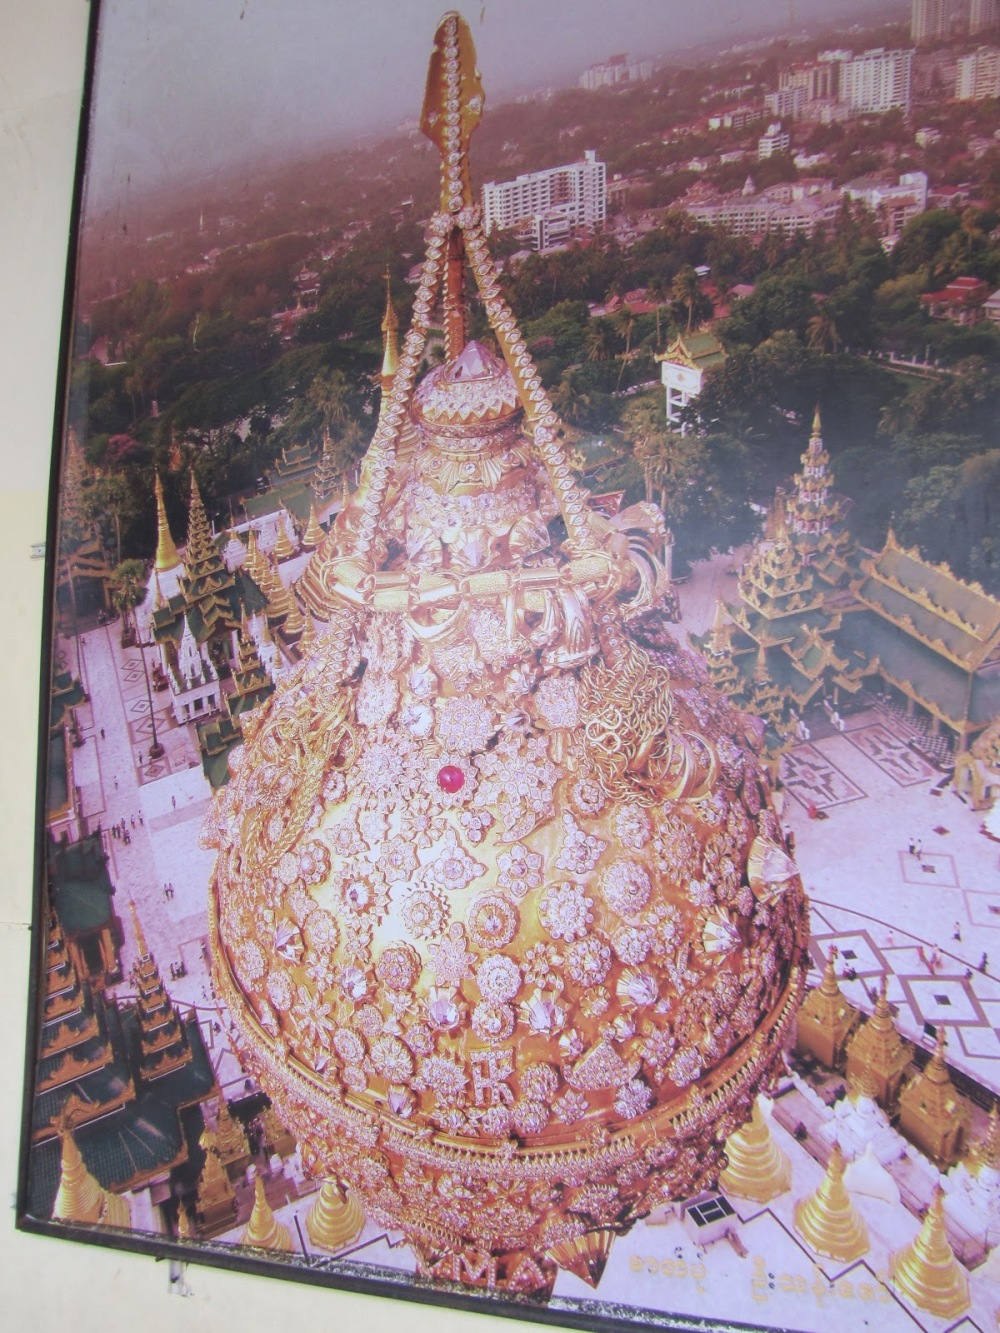 The top of the main stupa with rubies, emeralds and diamonds.